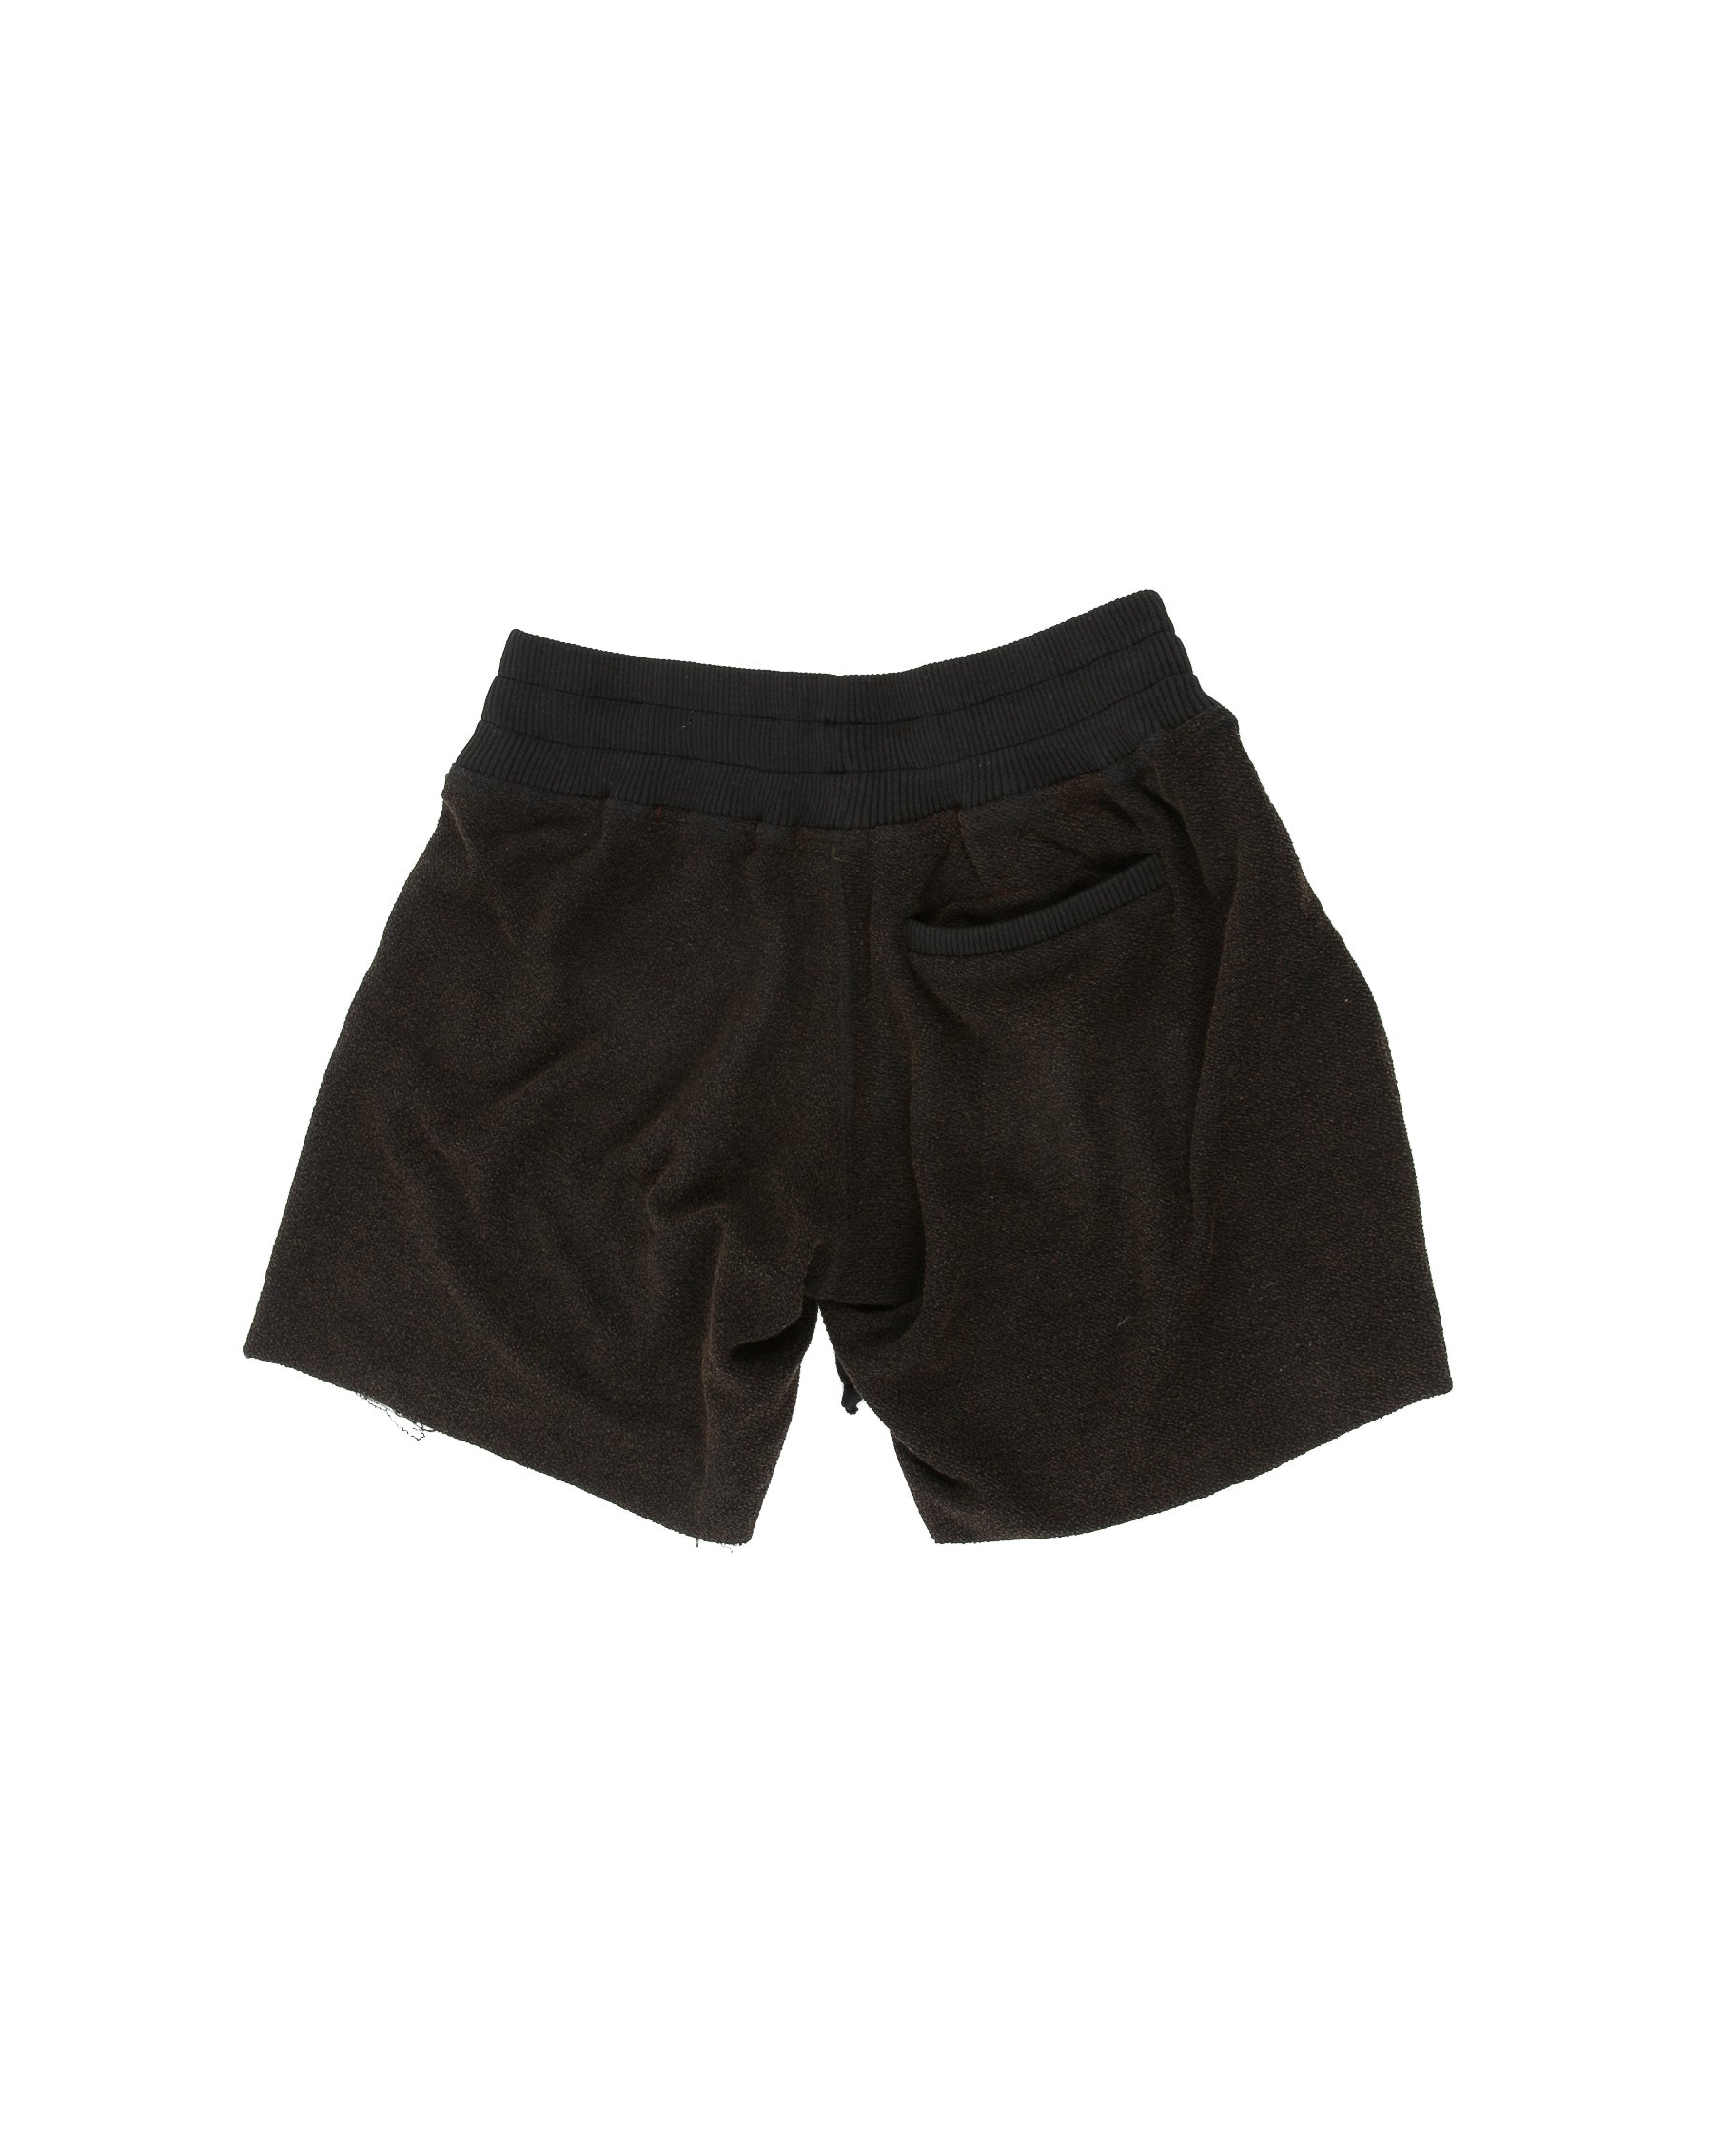 Terry Short in Black